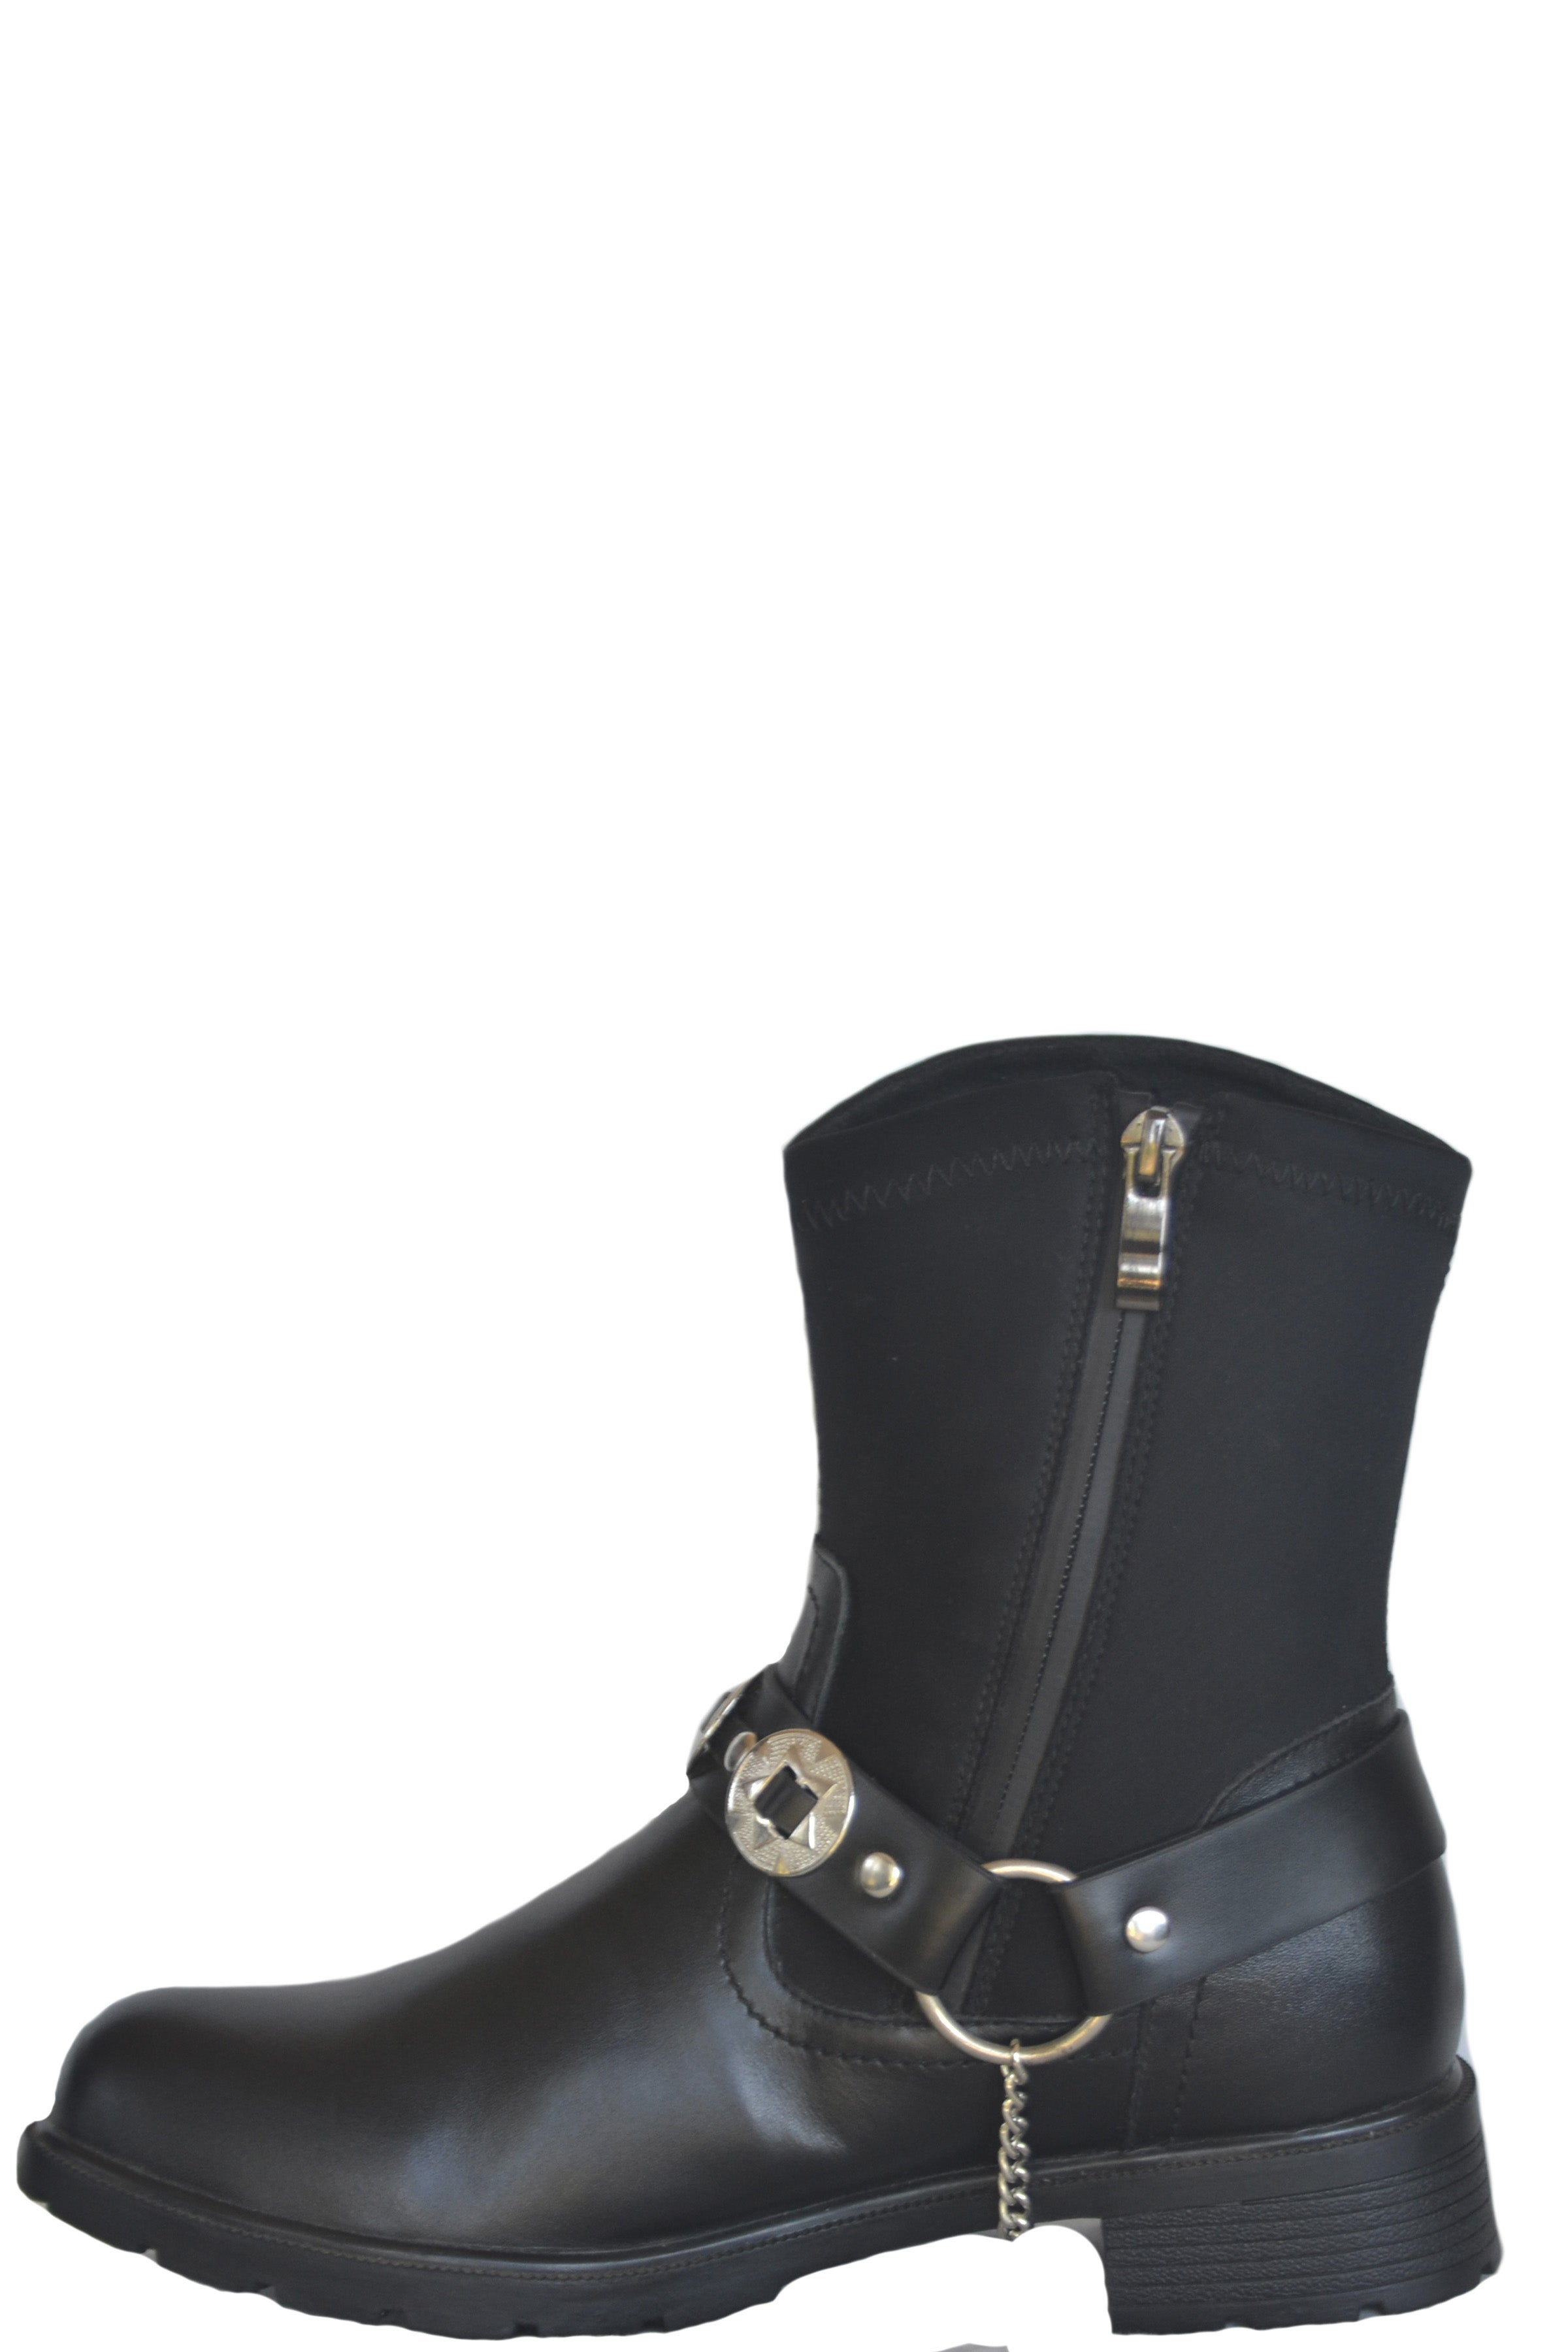 VIRGINIA BREATHABLE WATERPROOF NYLON BOOT WITH CONCHO BELT